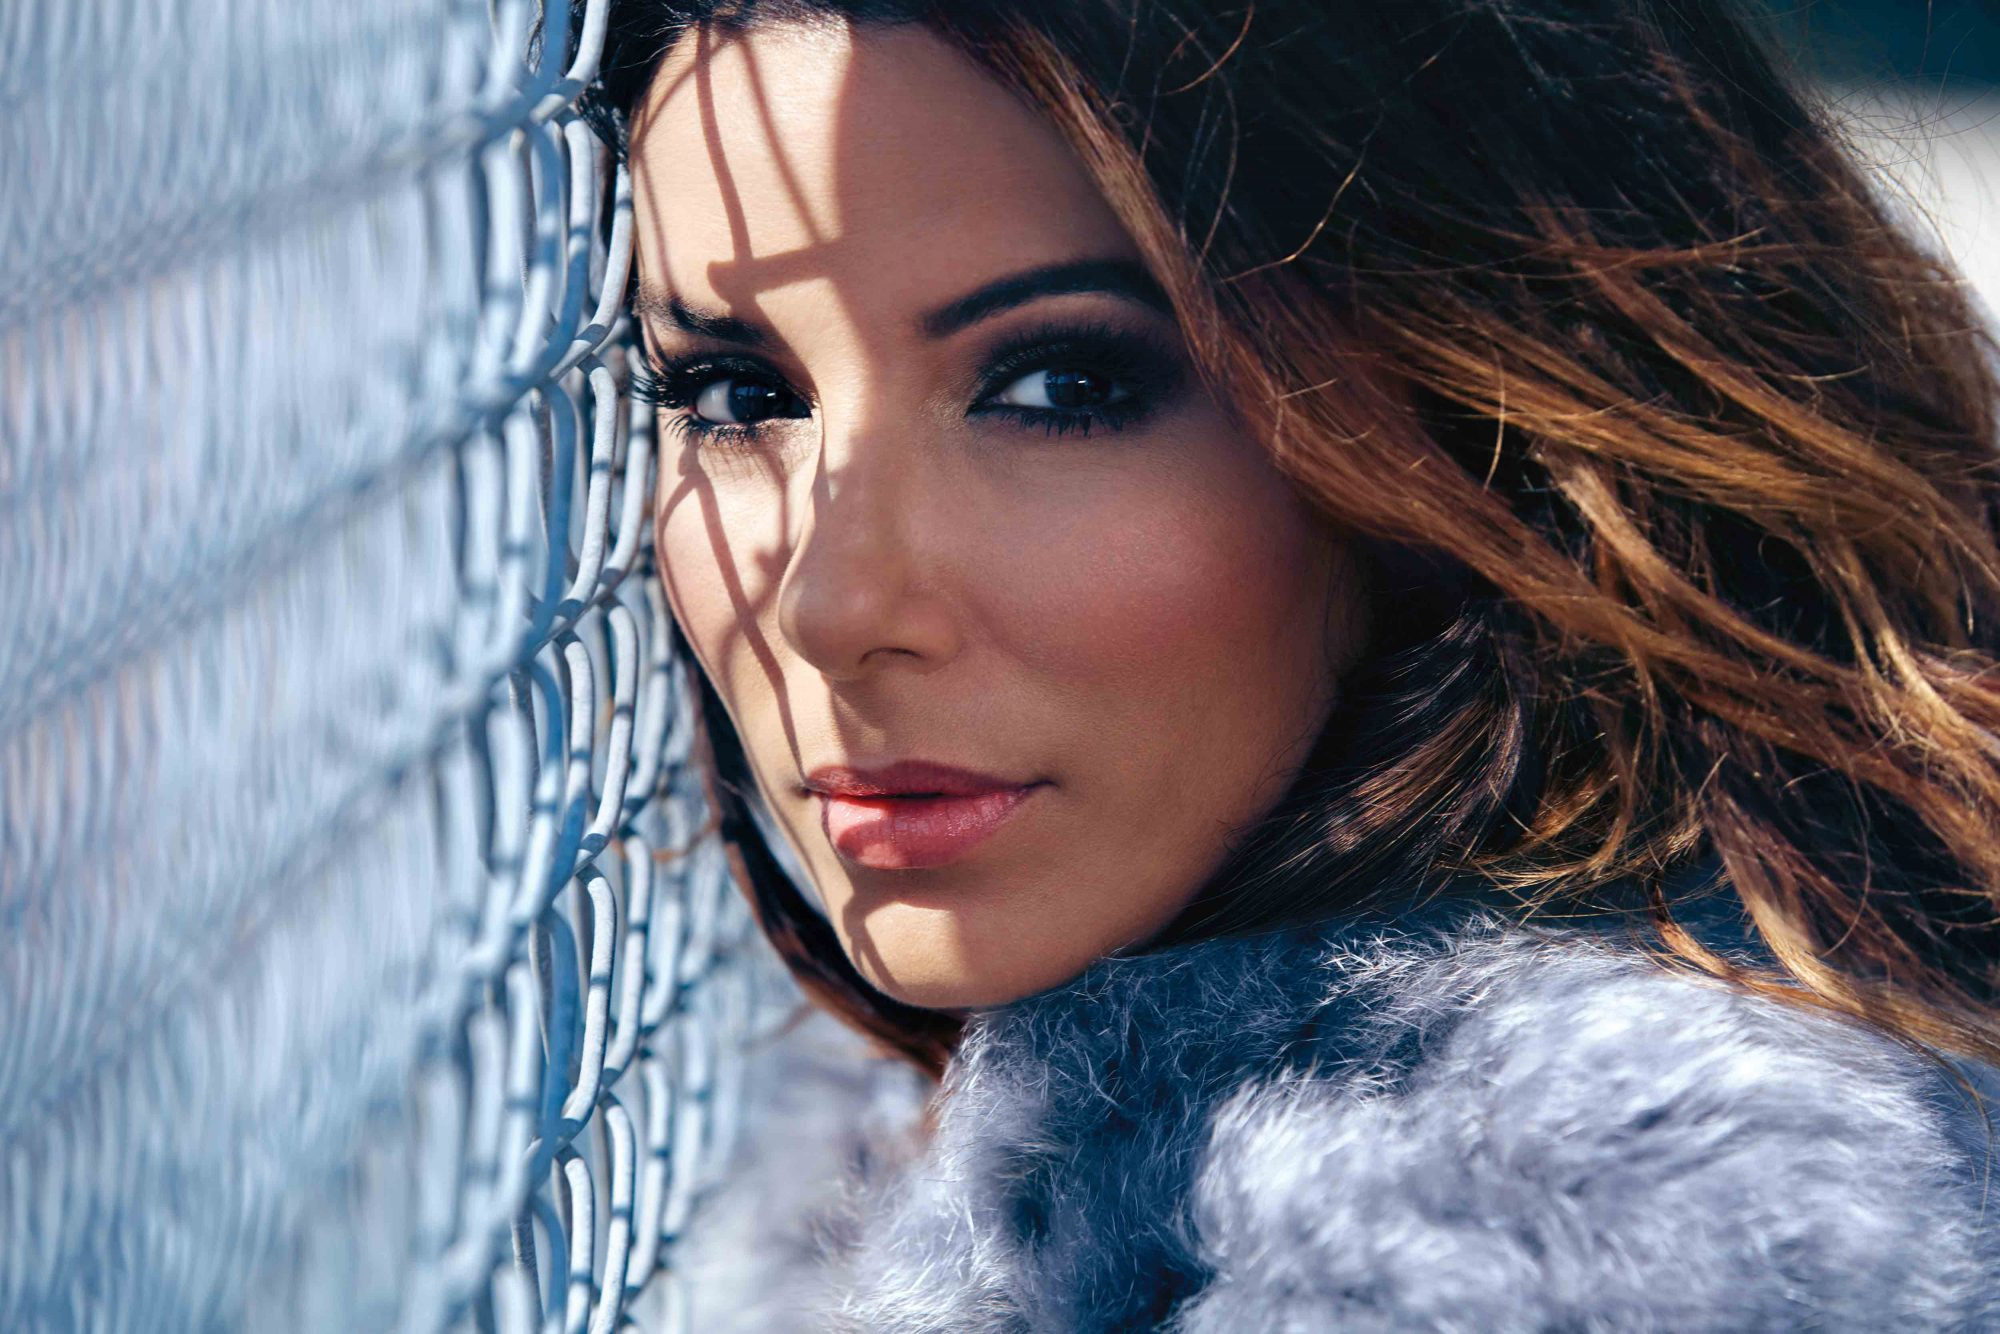 Pregnant Eva Longoria Says This Surprising Part of Her Beauty Routine 'Pisses Me Off Sometimes'